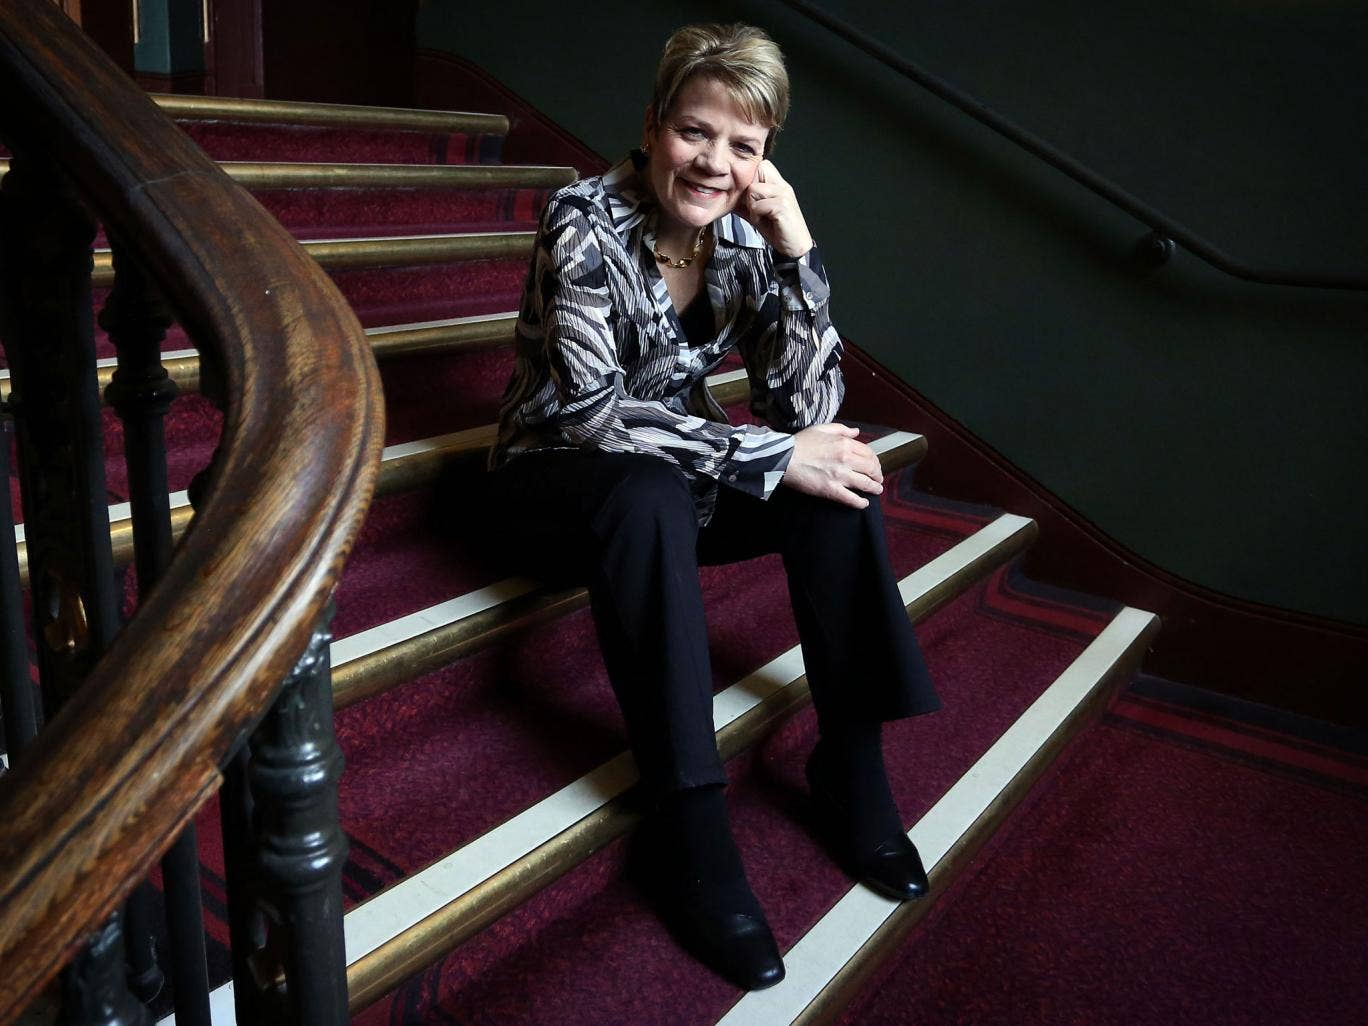 Marin Alsop will be the first female conductor on the Royal Albert Hall podium